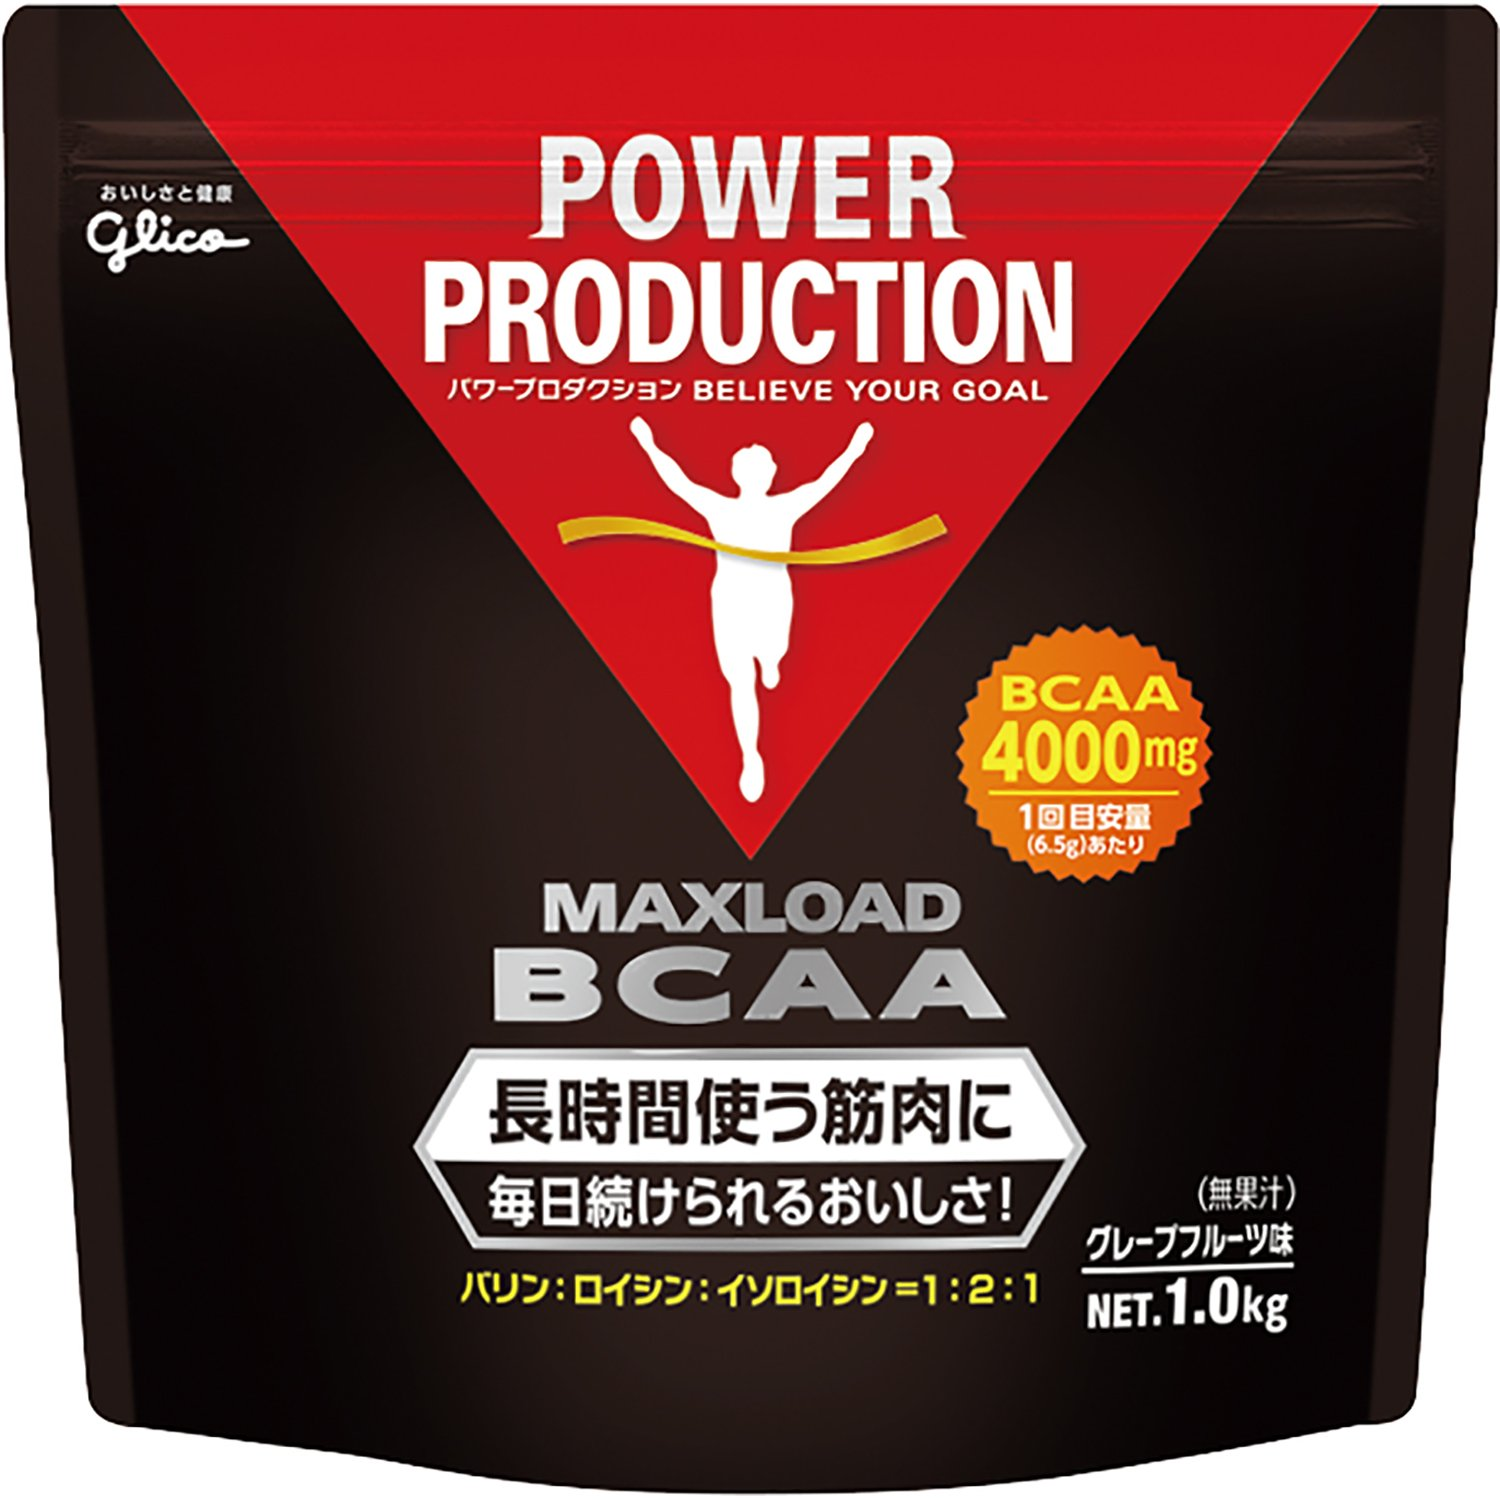 Japan Health and Beauty - Glico Power Production Max load BCAA muscle endurance-based amino acid grapefruit flavor 1kg *AF27*